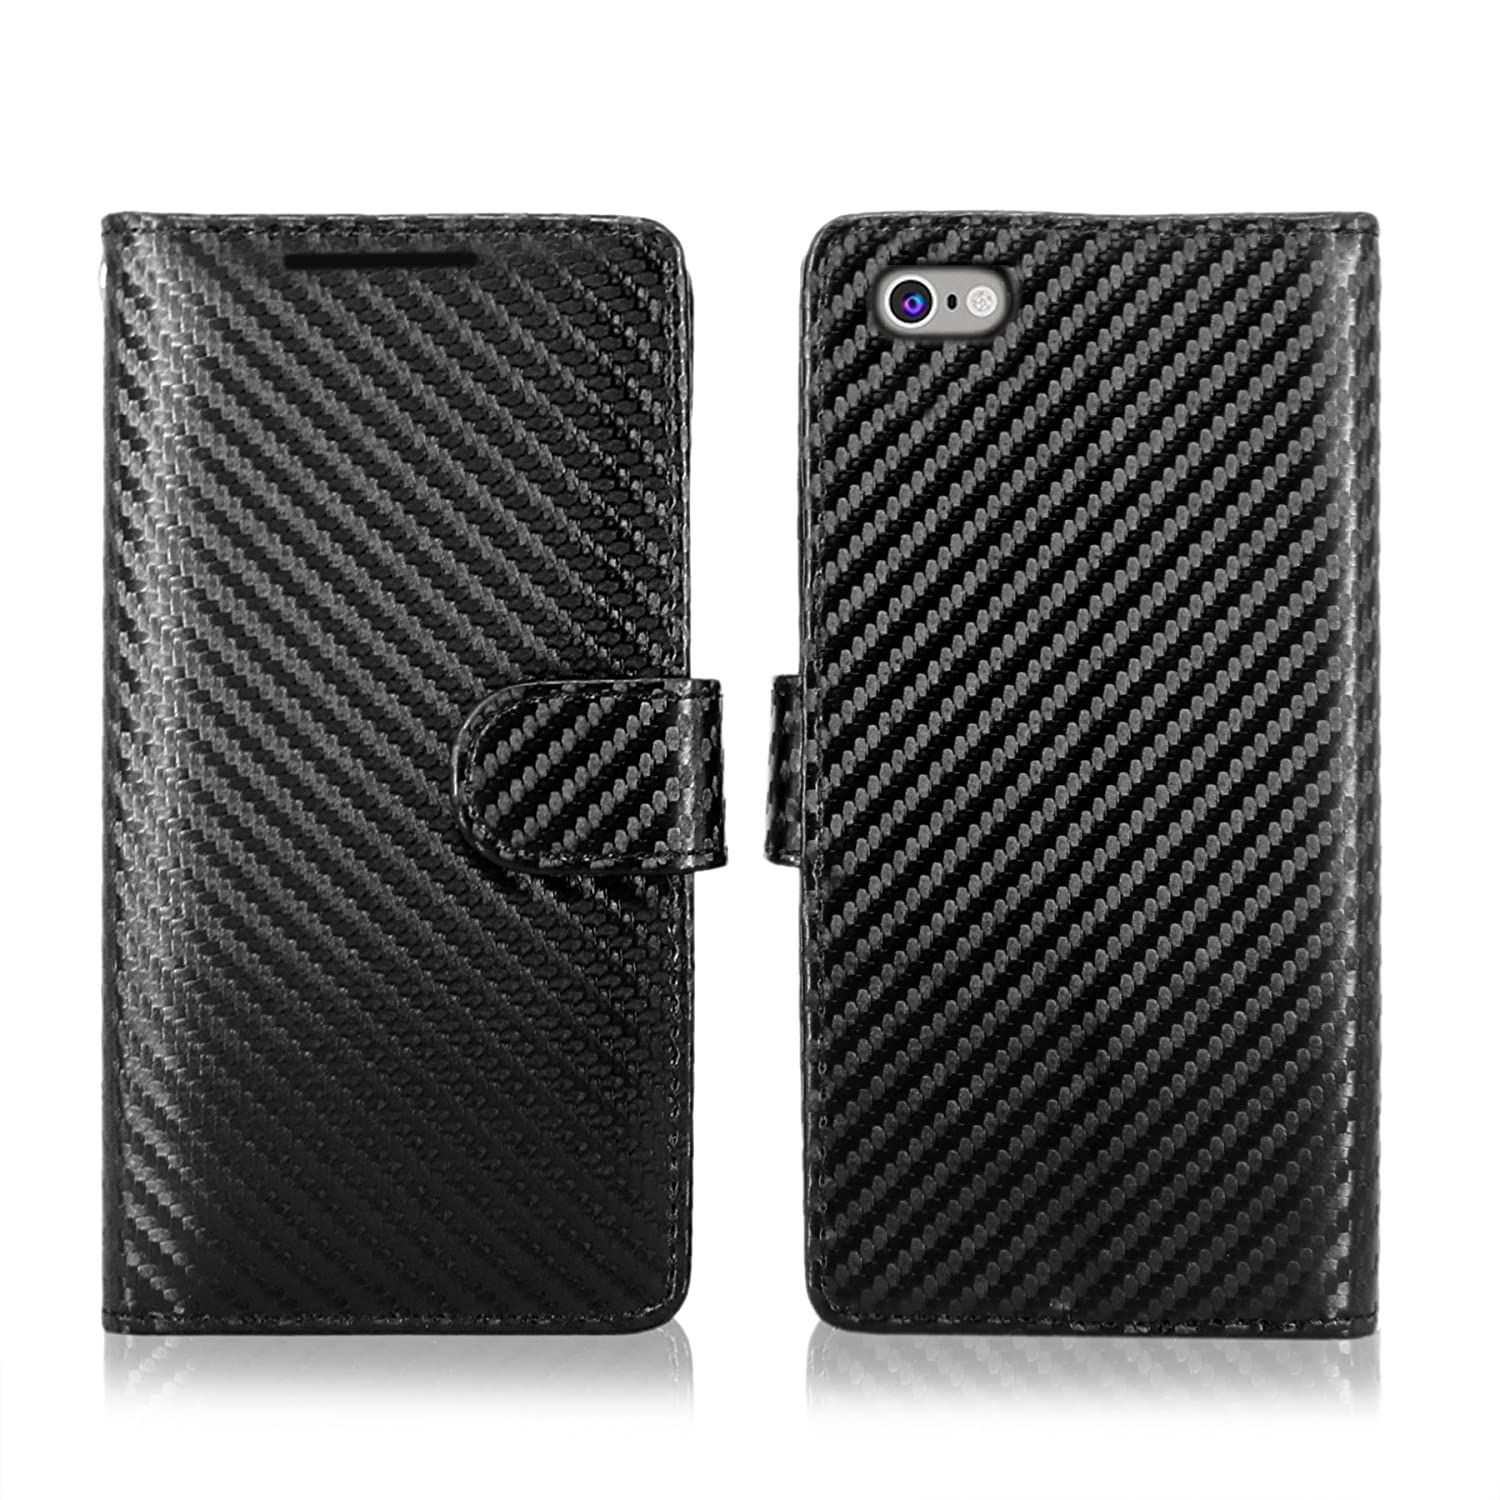 iPhone Cellularvilla Wallet Premium Leather Image 2